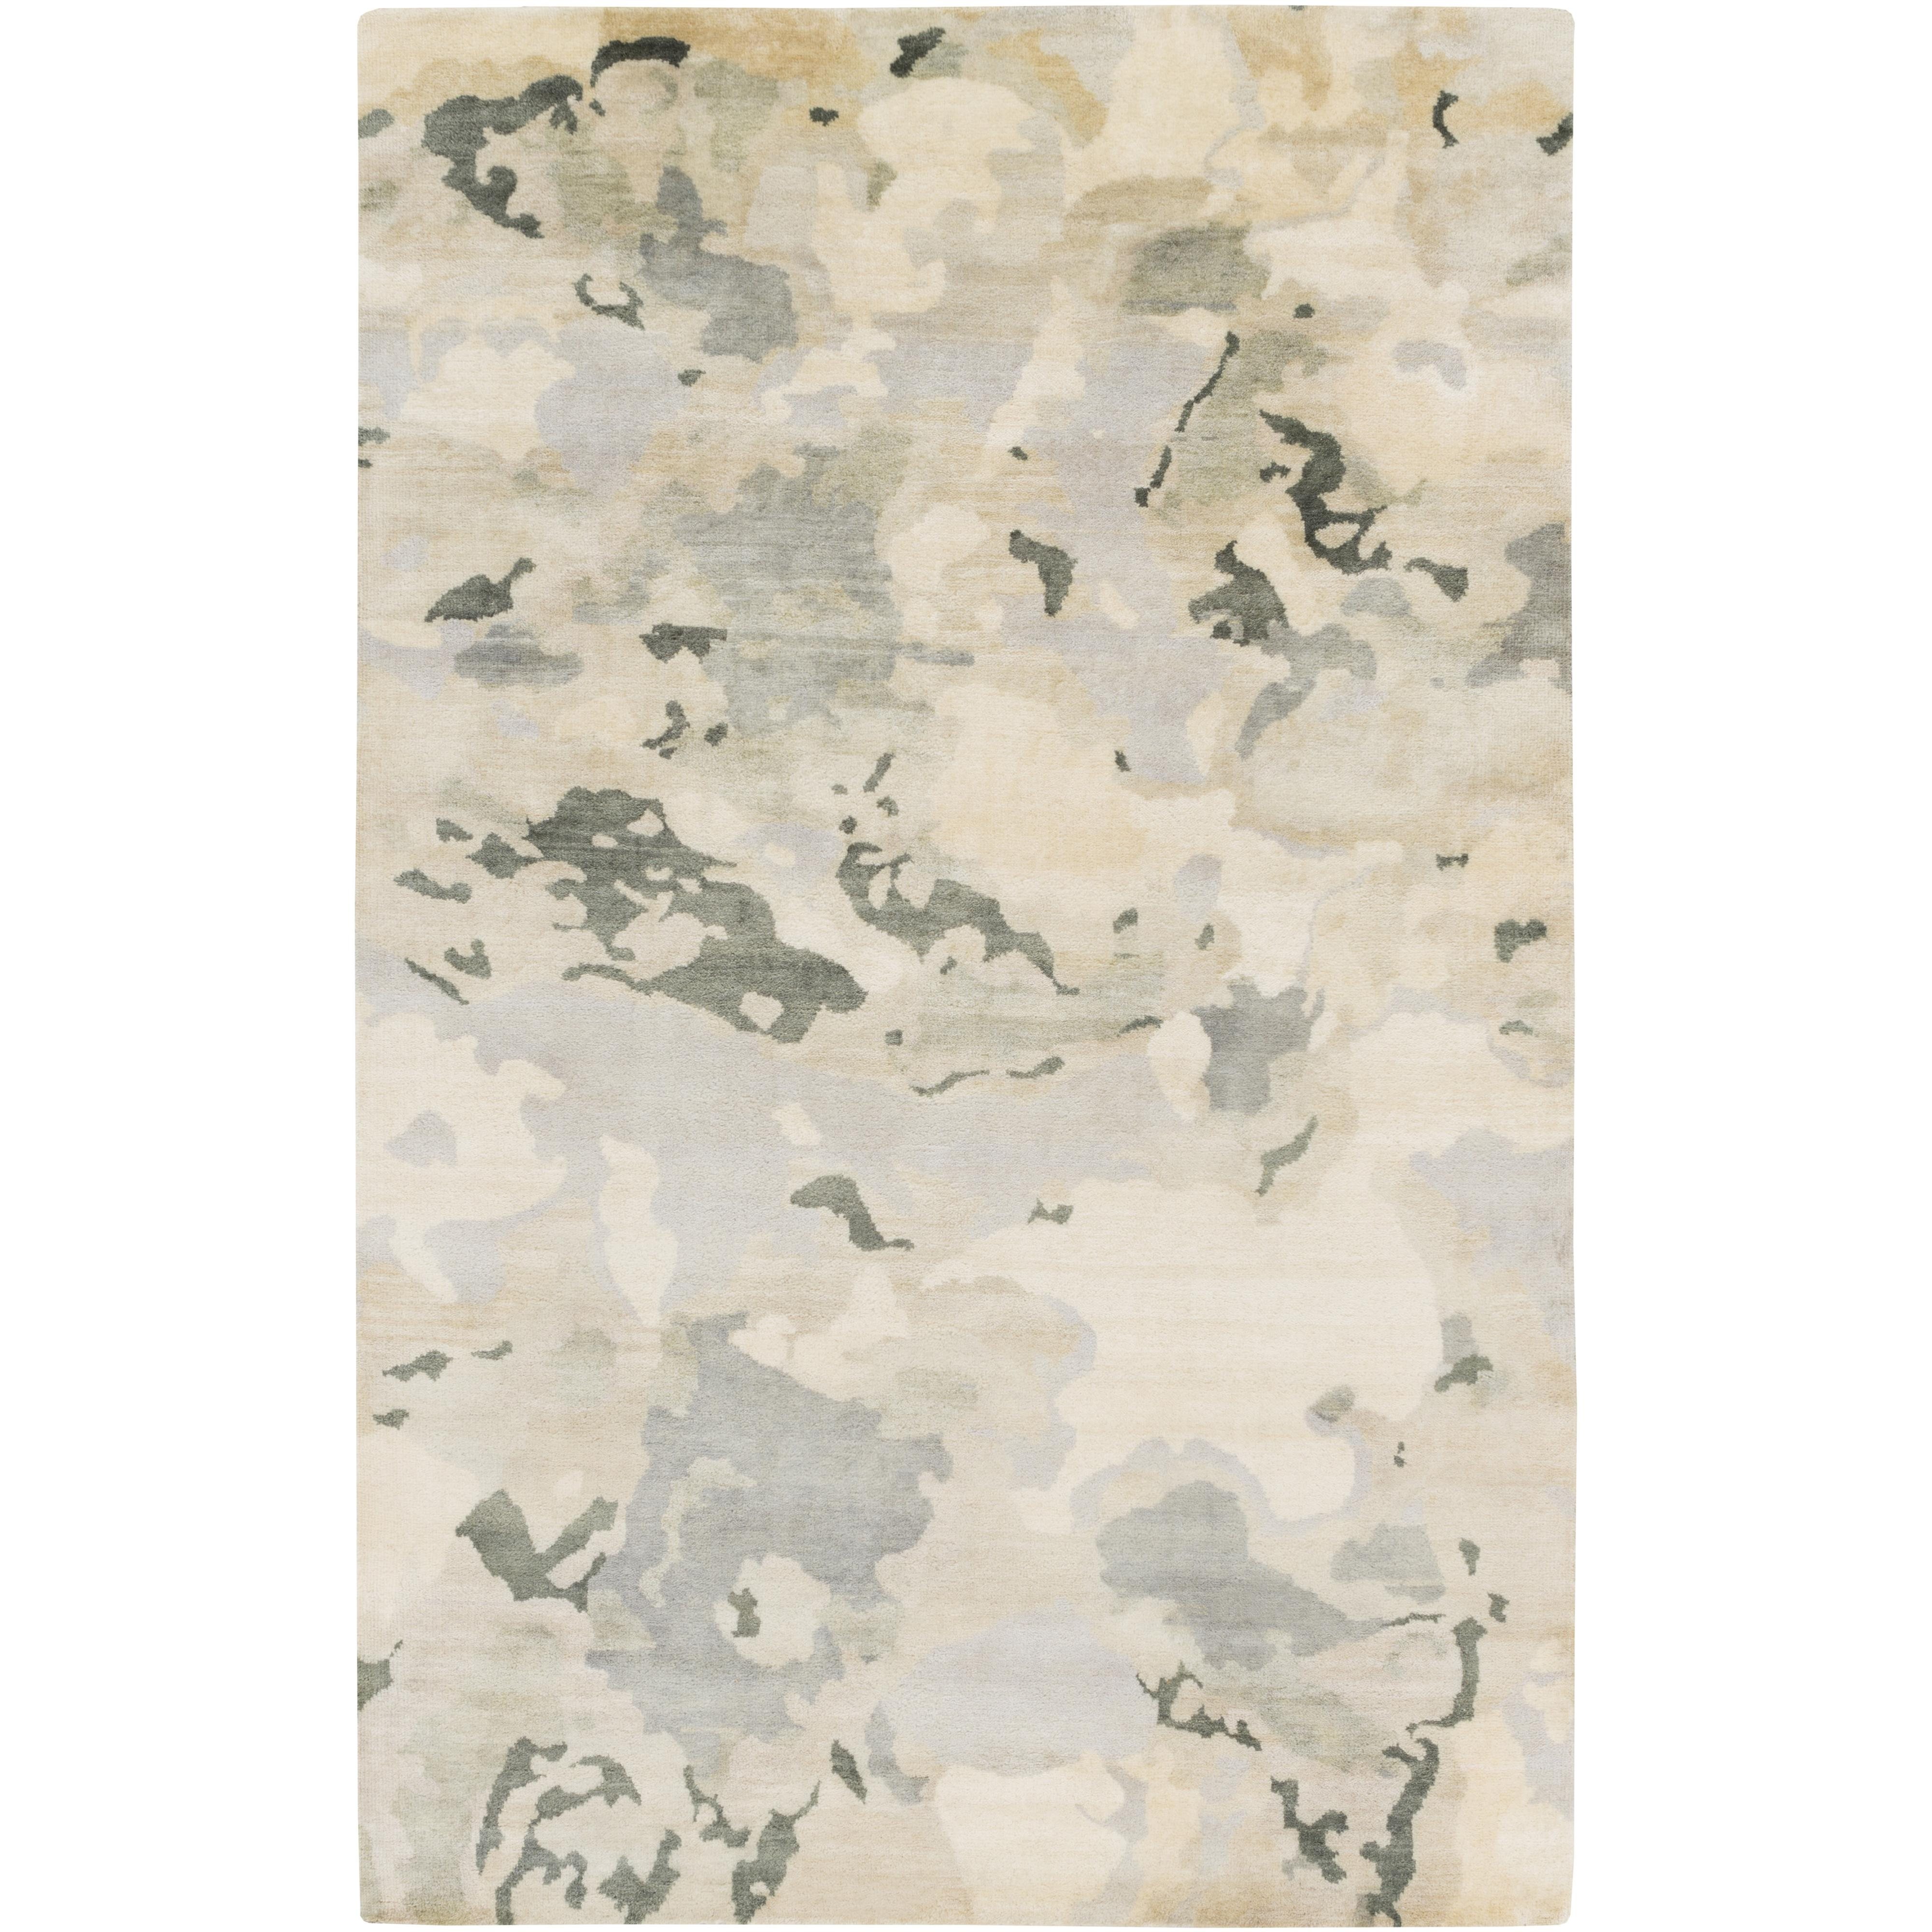 Surya Slice of Nature 8' x 11' - Item Number: SLI6406-811